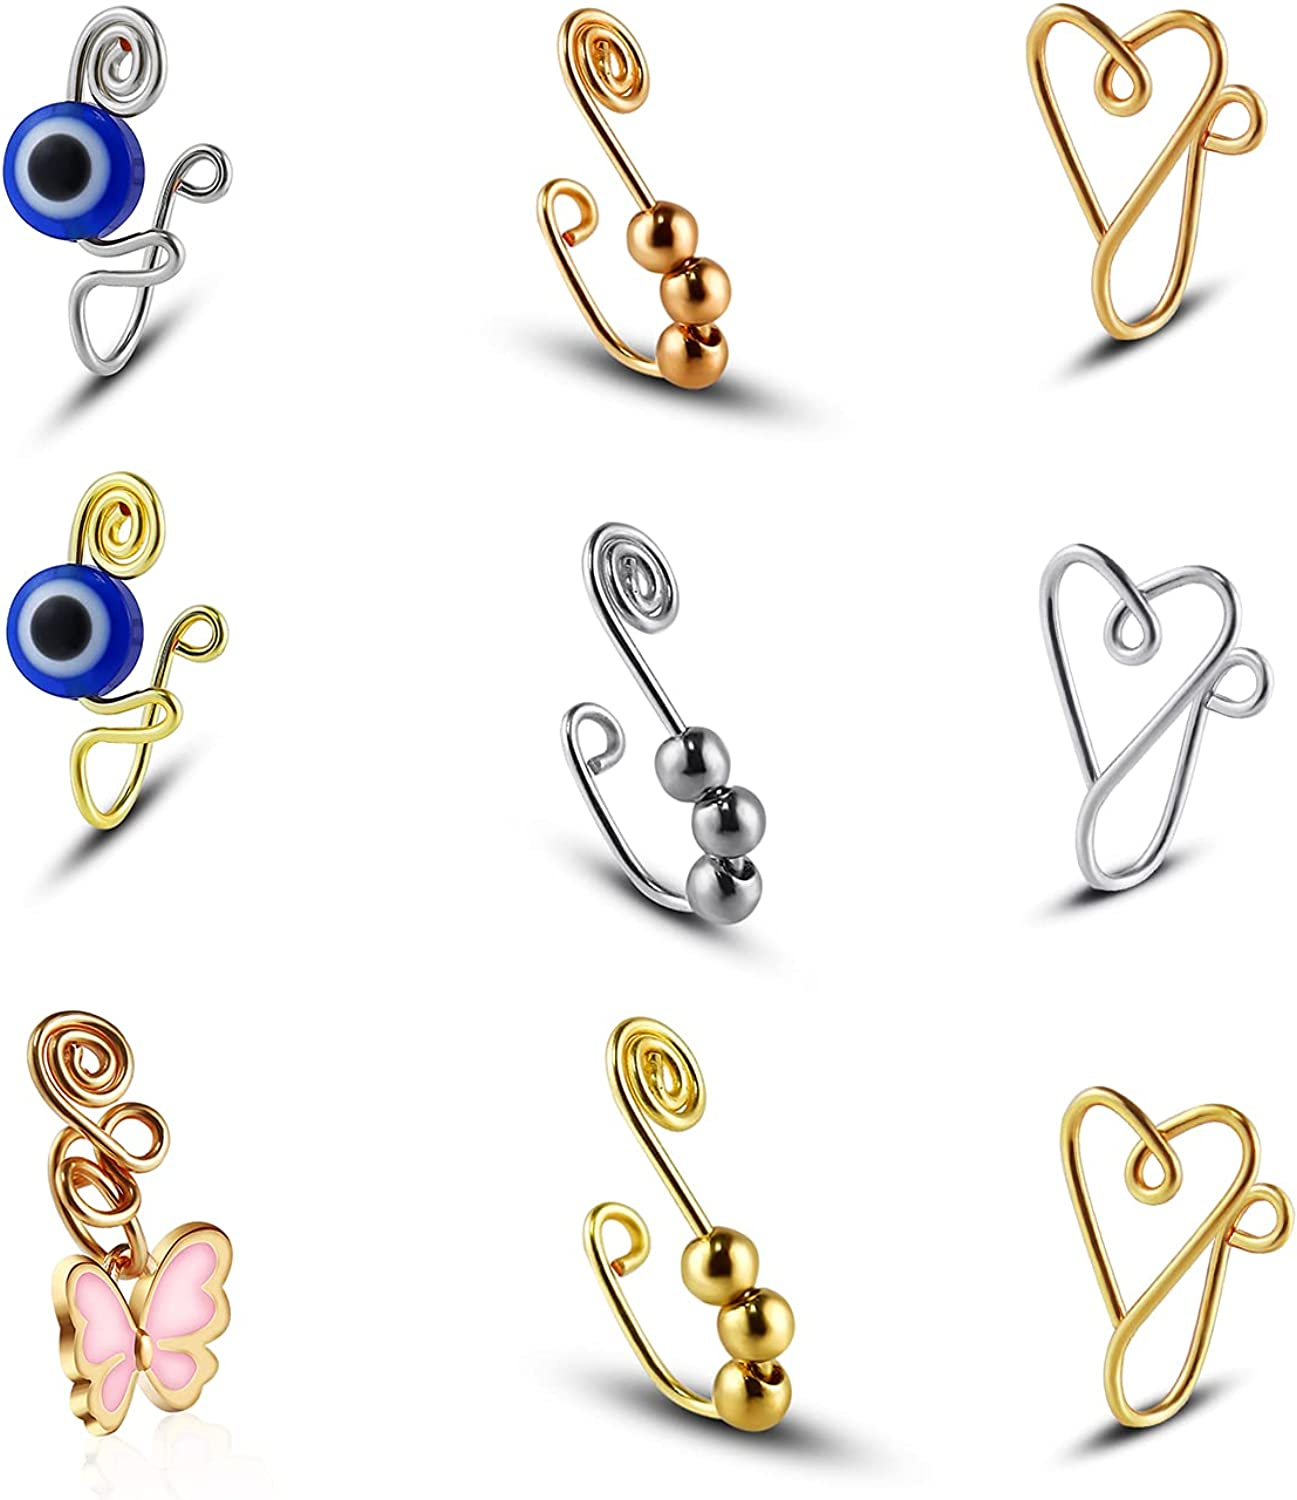 COLORFUL BLING 9pcs African Fake Nose Rings Set Evil Eye Hoop Non-Pierced Adjustable Clip on Nose Cuff, Ear Cuff Faux Body Piercing Jewelry for Women Girls